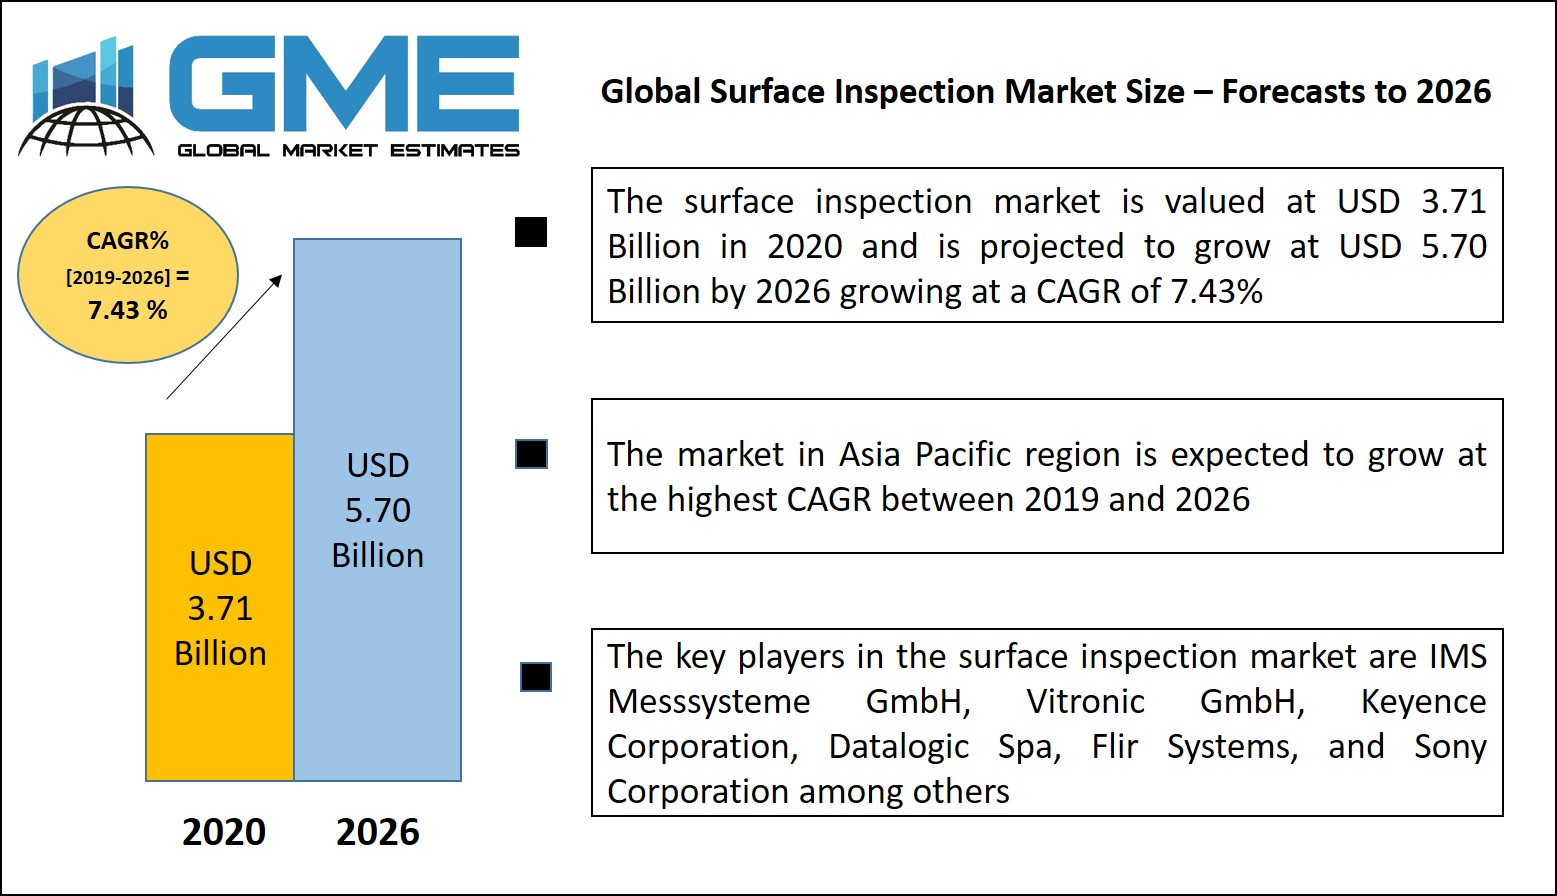 Global Surface Inspection Market Size – Forecasts to 2026